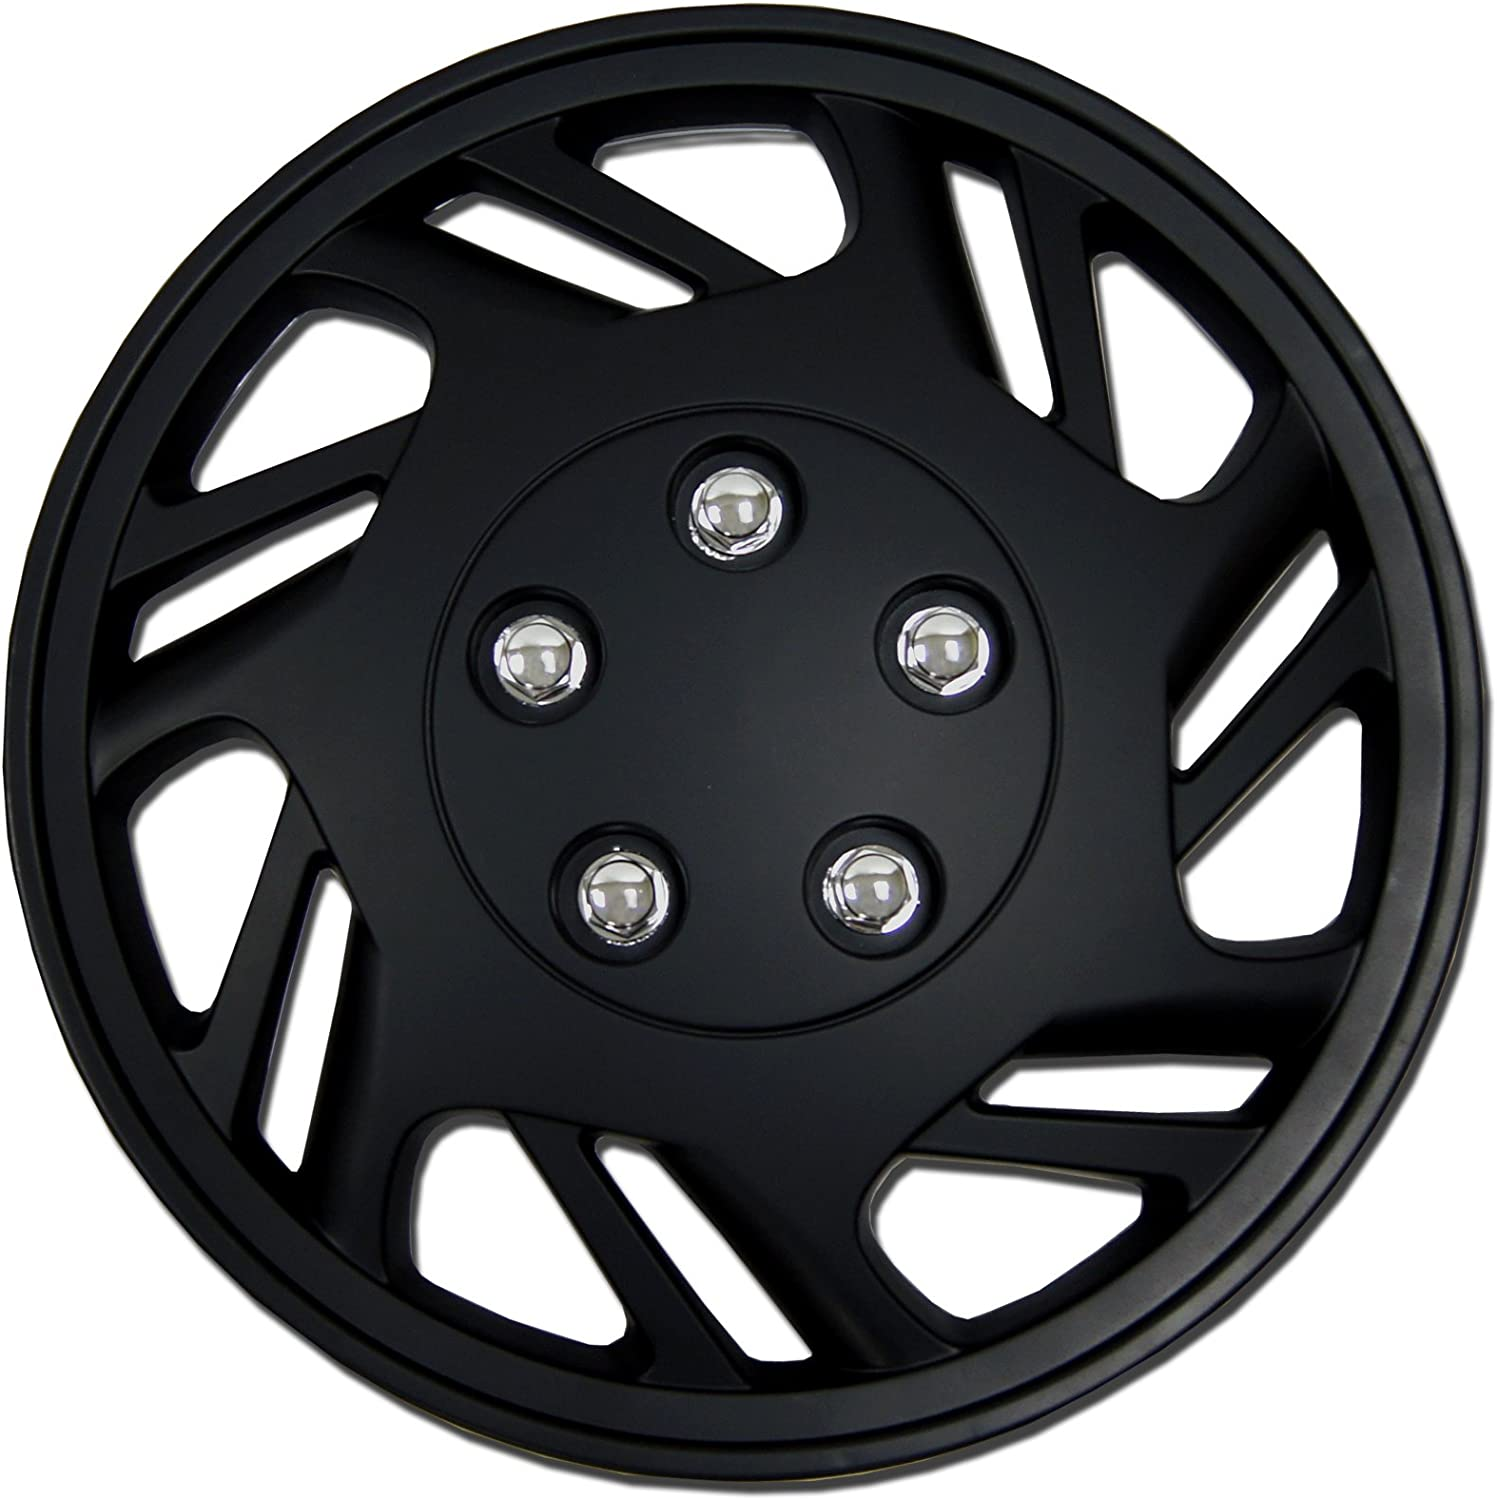 Tuningpros WC1P-15-9126-B - Pack of 1 Hubcap (1 Piece) - 15-Inches Style Snap-On (Pop-On) Type Matte Black Wheel Covers Hub-caps